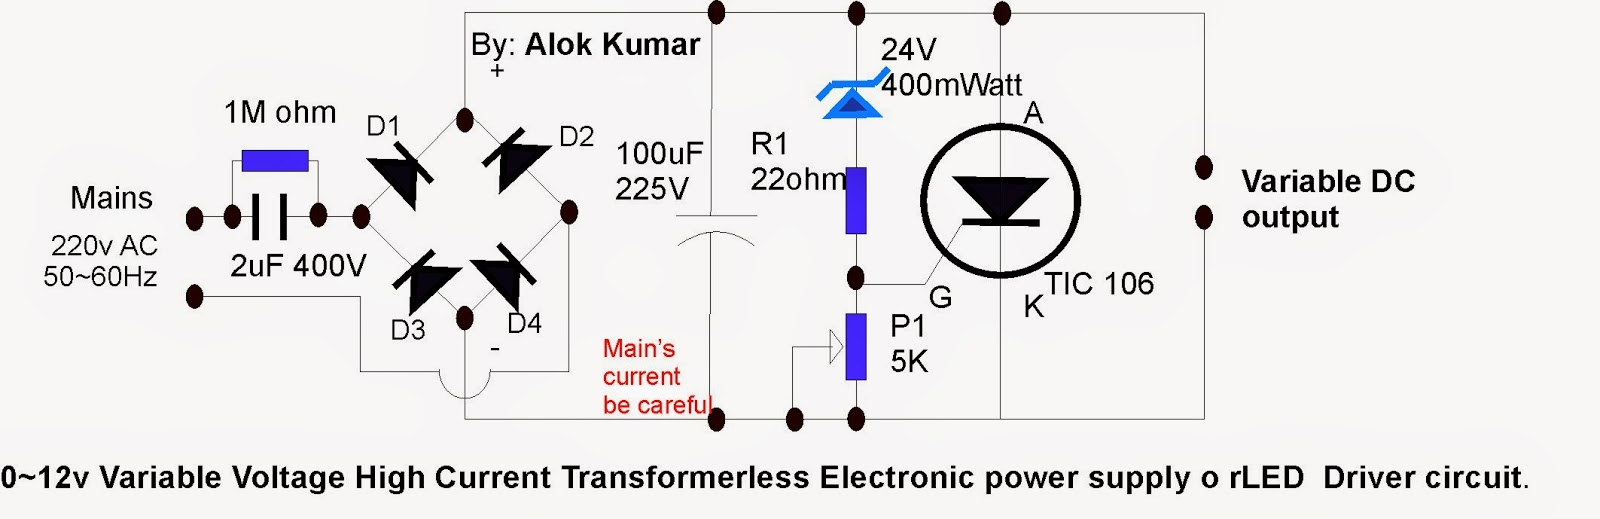 hight resolution of electronic circuits transformerless power supply led drivers circuit diagram 12 volt dc led dimmer wiring